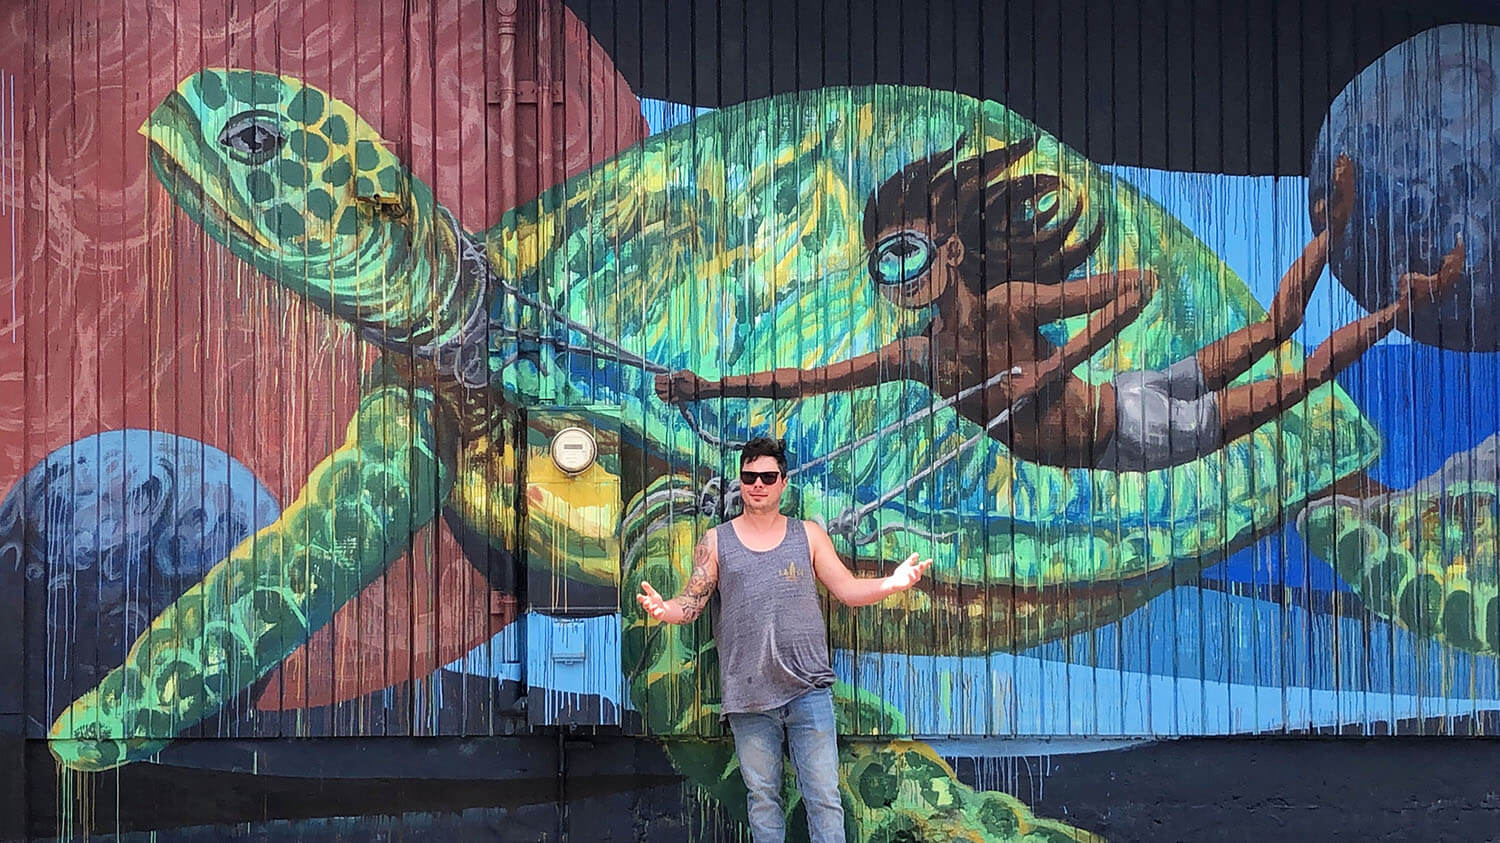 Instagrammable Walls Maui Hawaii Wailuku Murals